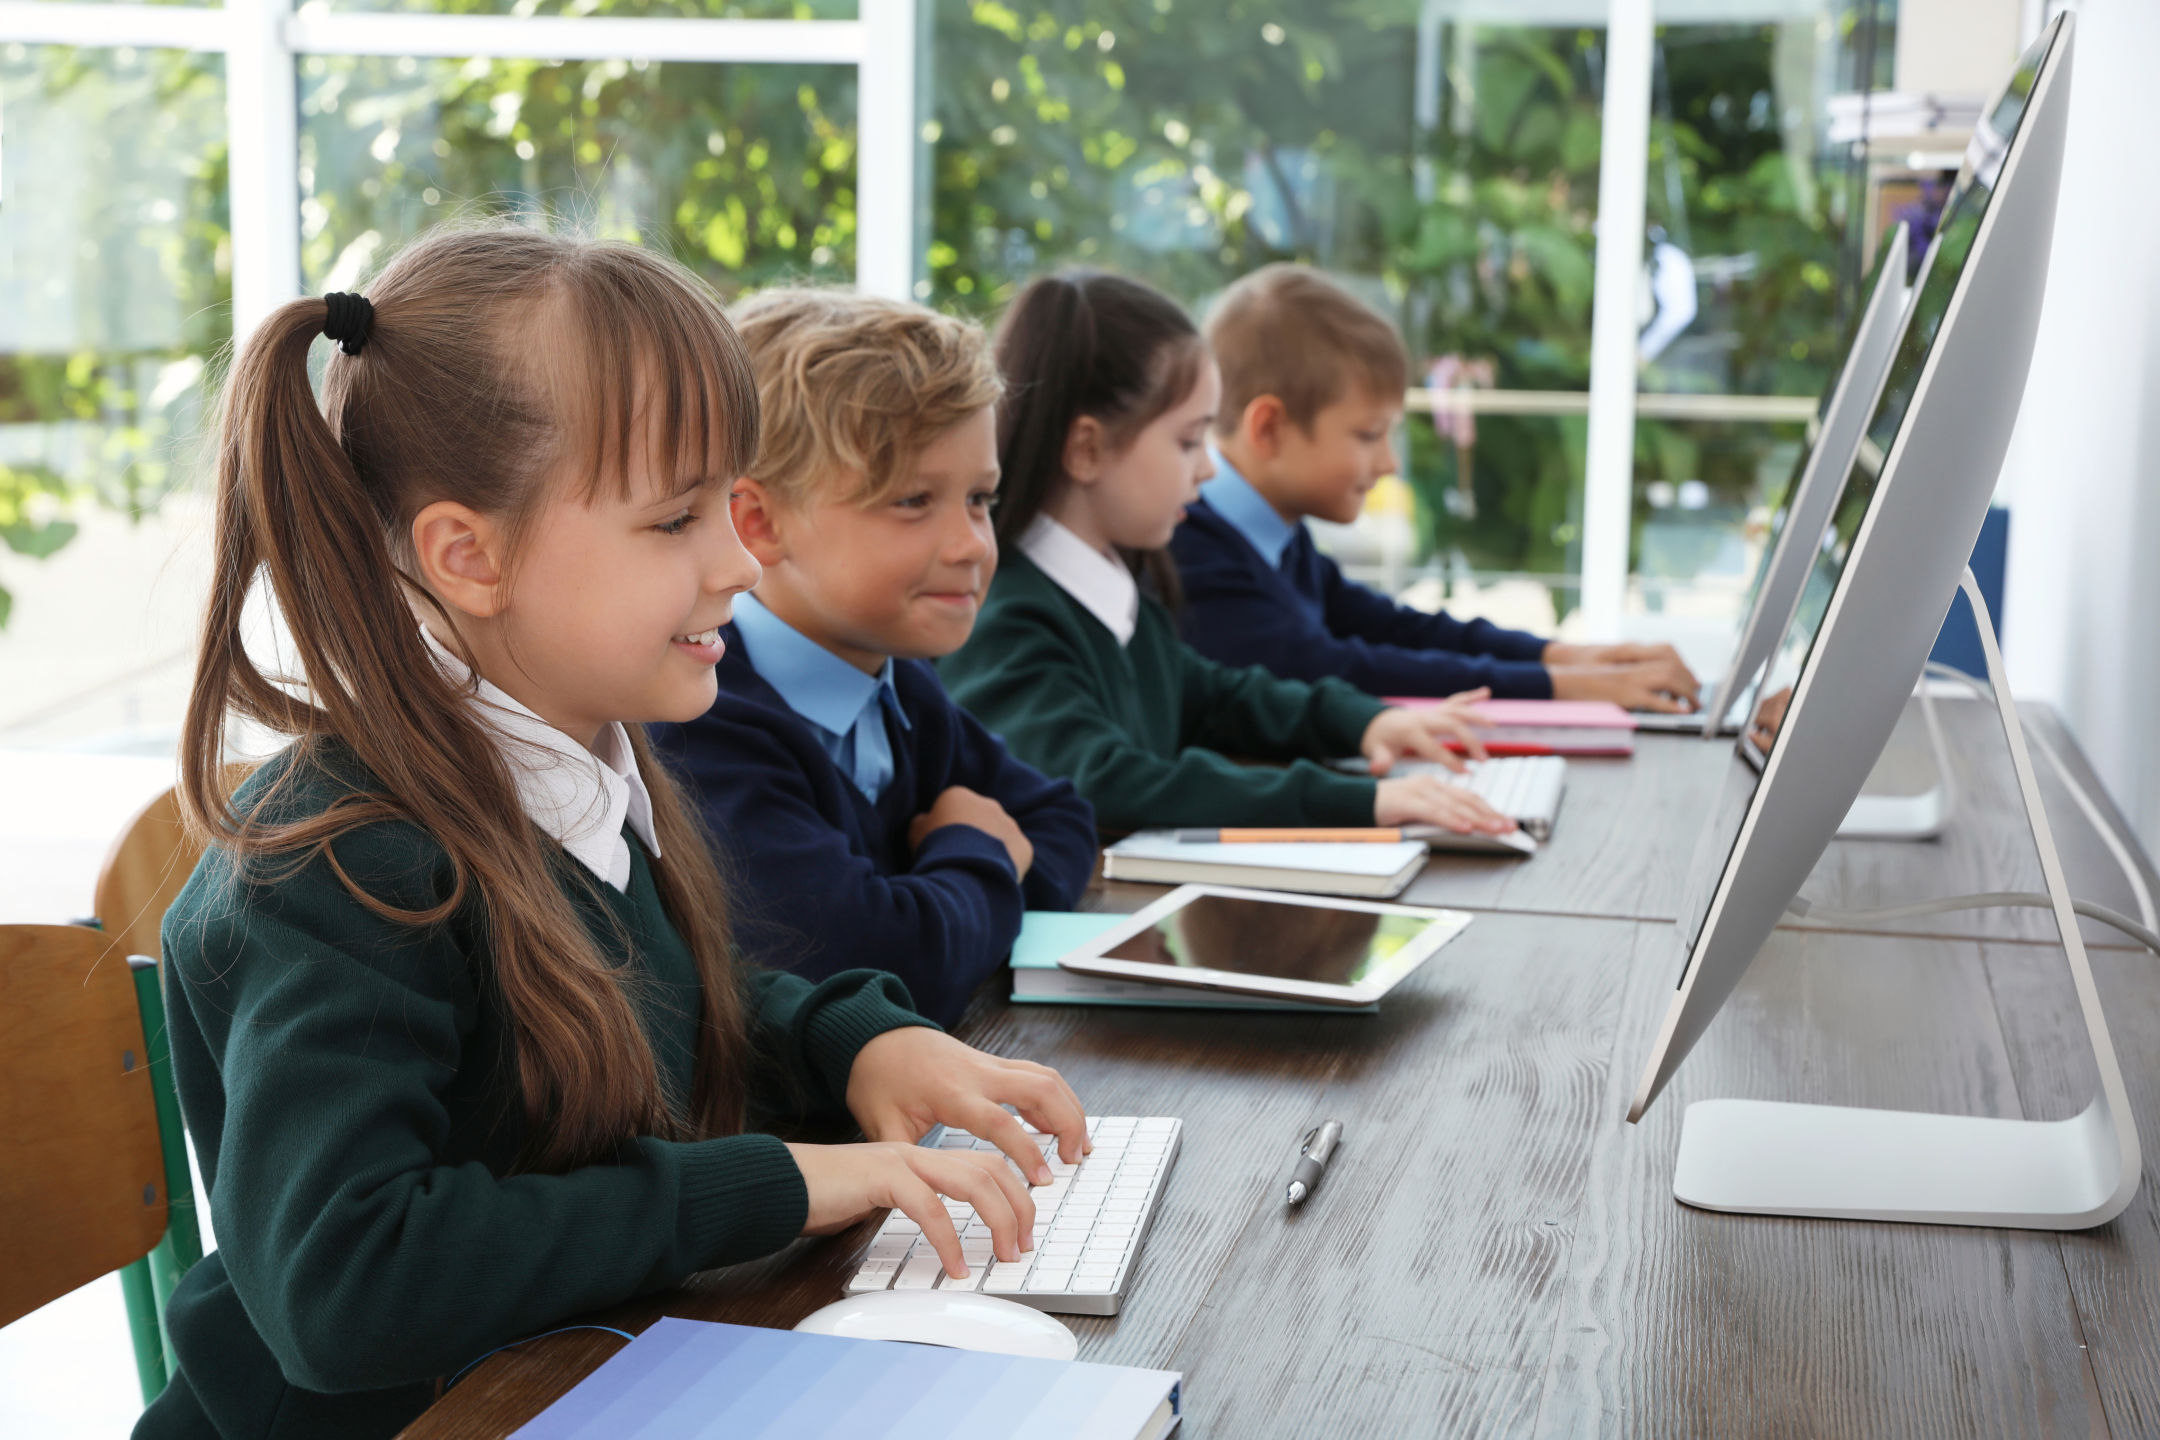 A group of pupils paired up at computers.